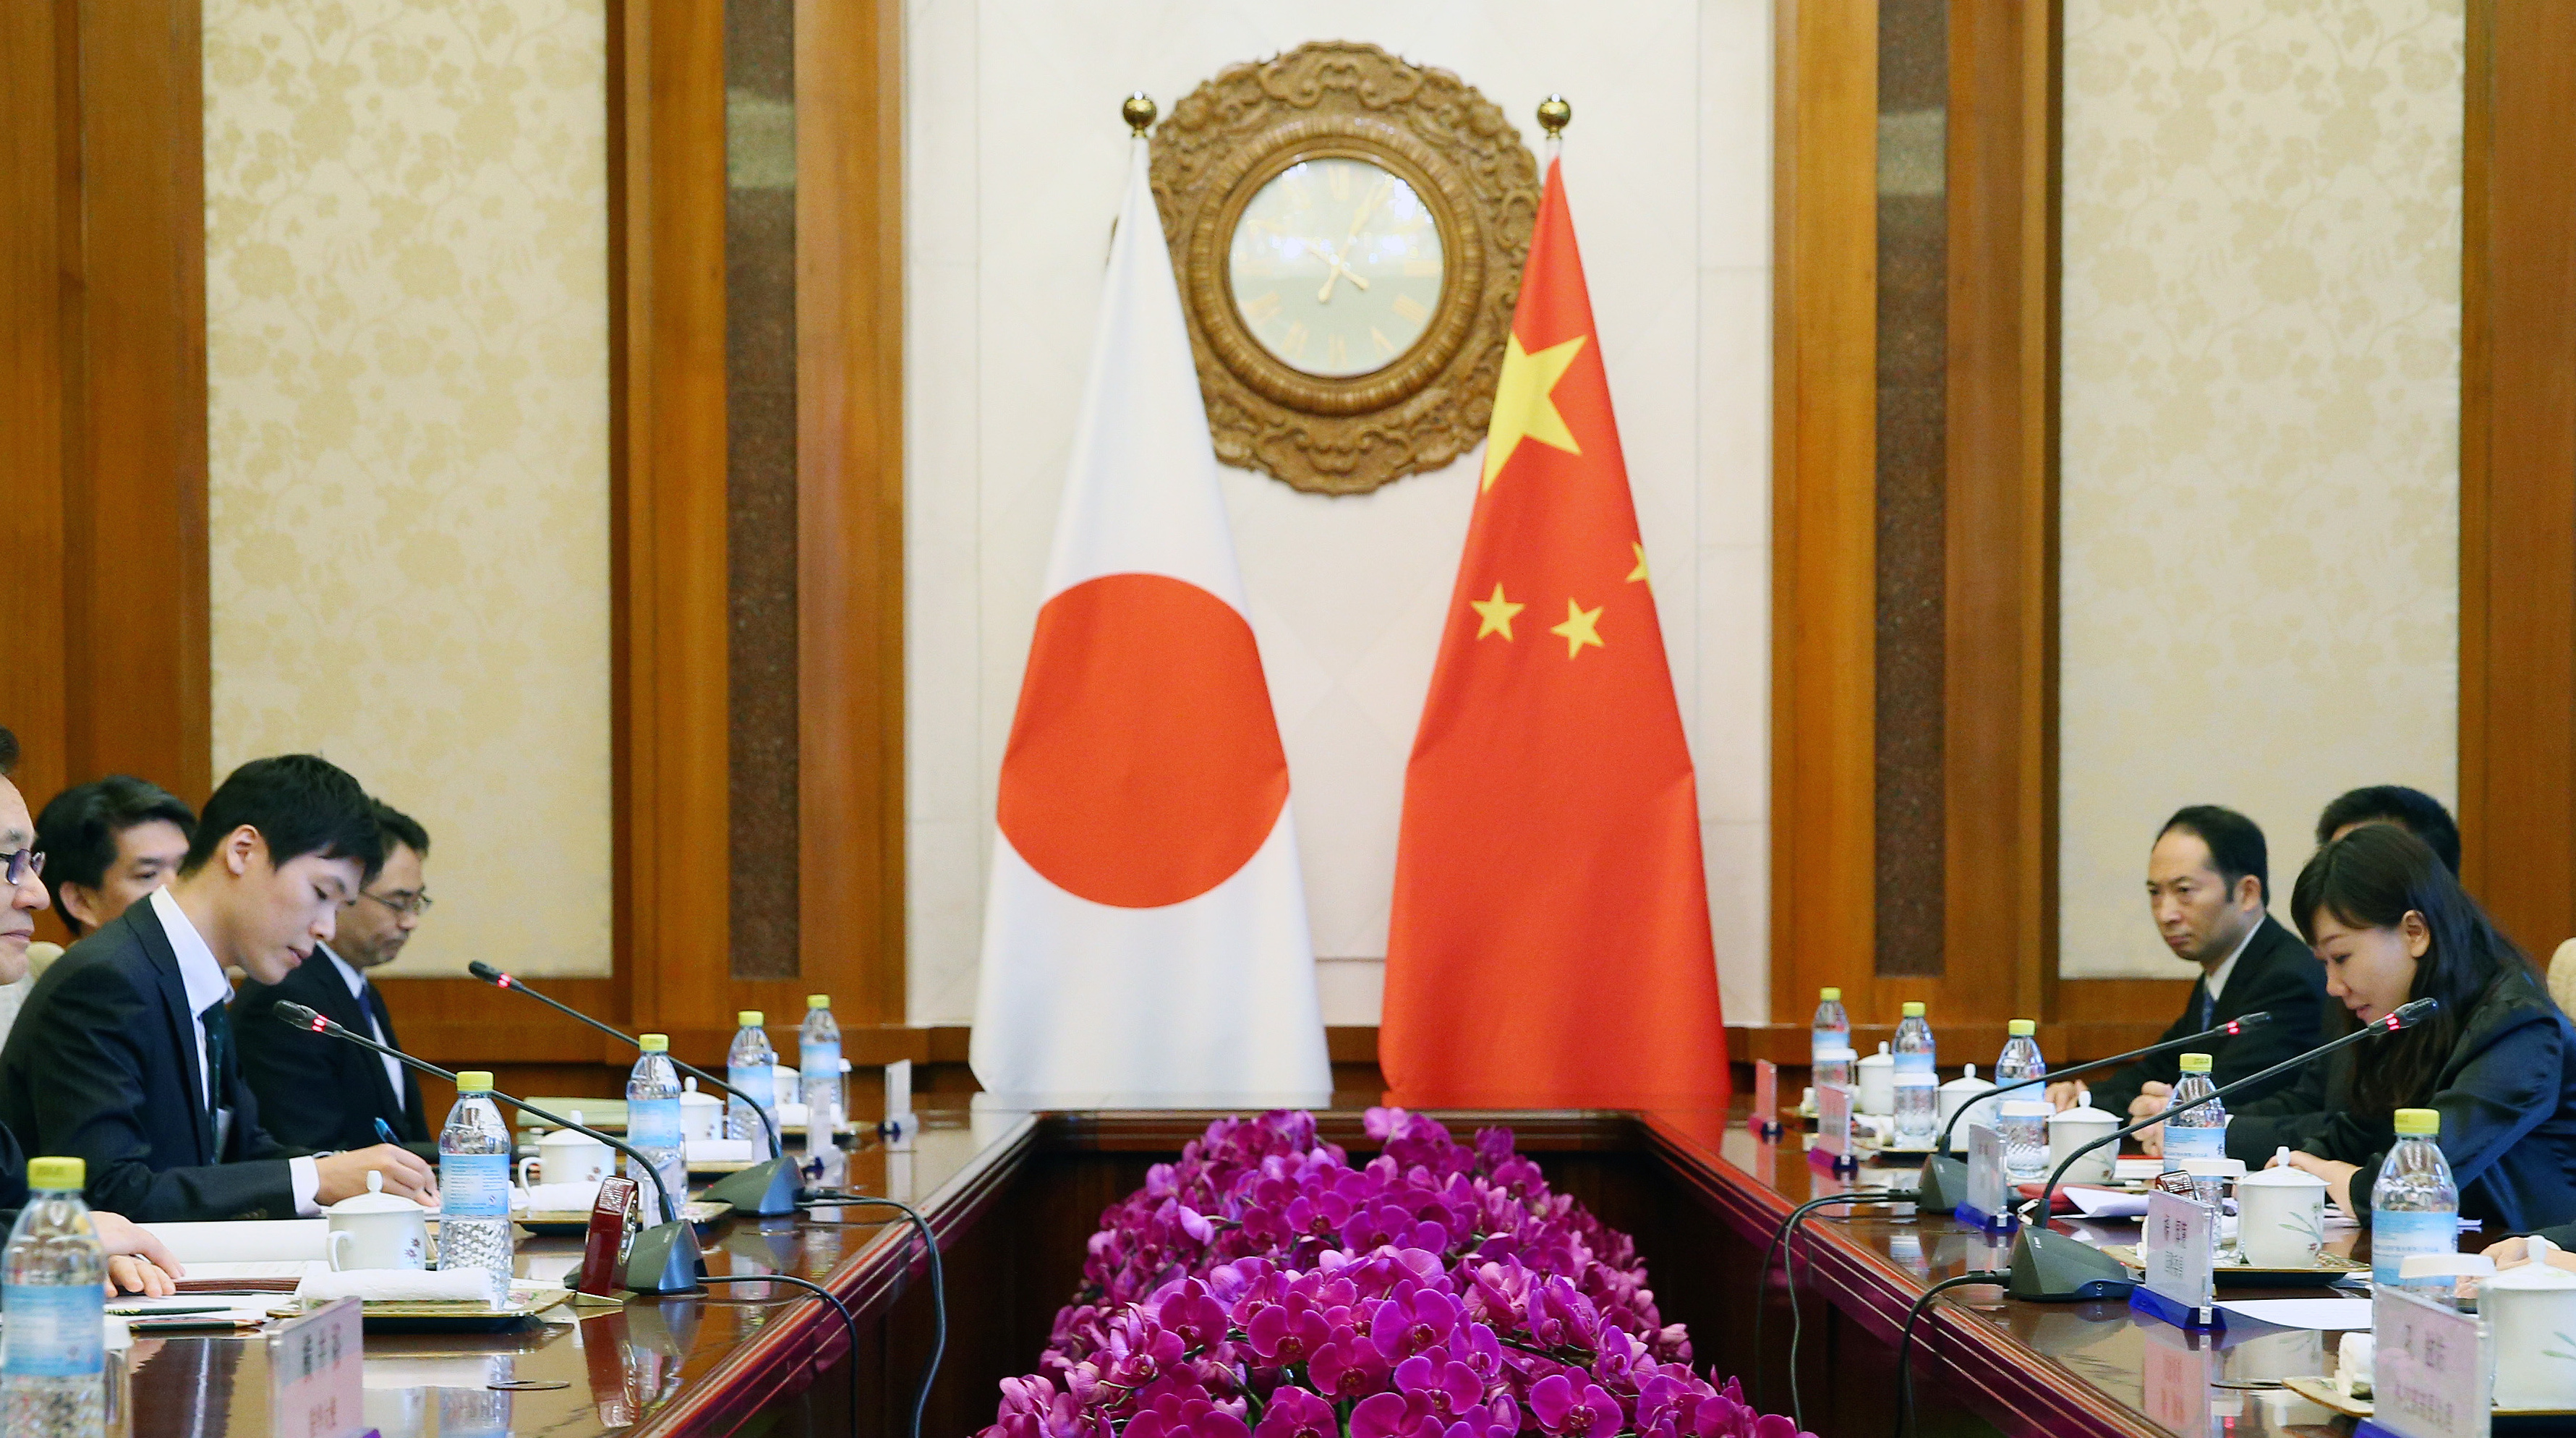 Chinese State Councillor Yang Jiechi (R) and Japanese national security council chief Shotaro Yachi (L) hold a meeting at the Diaoyutai State Guesthouse in Beijing, China, August 25, 2016.